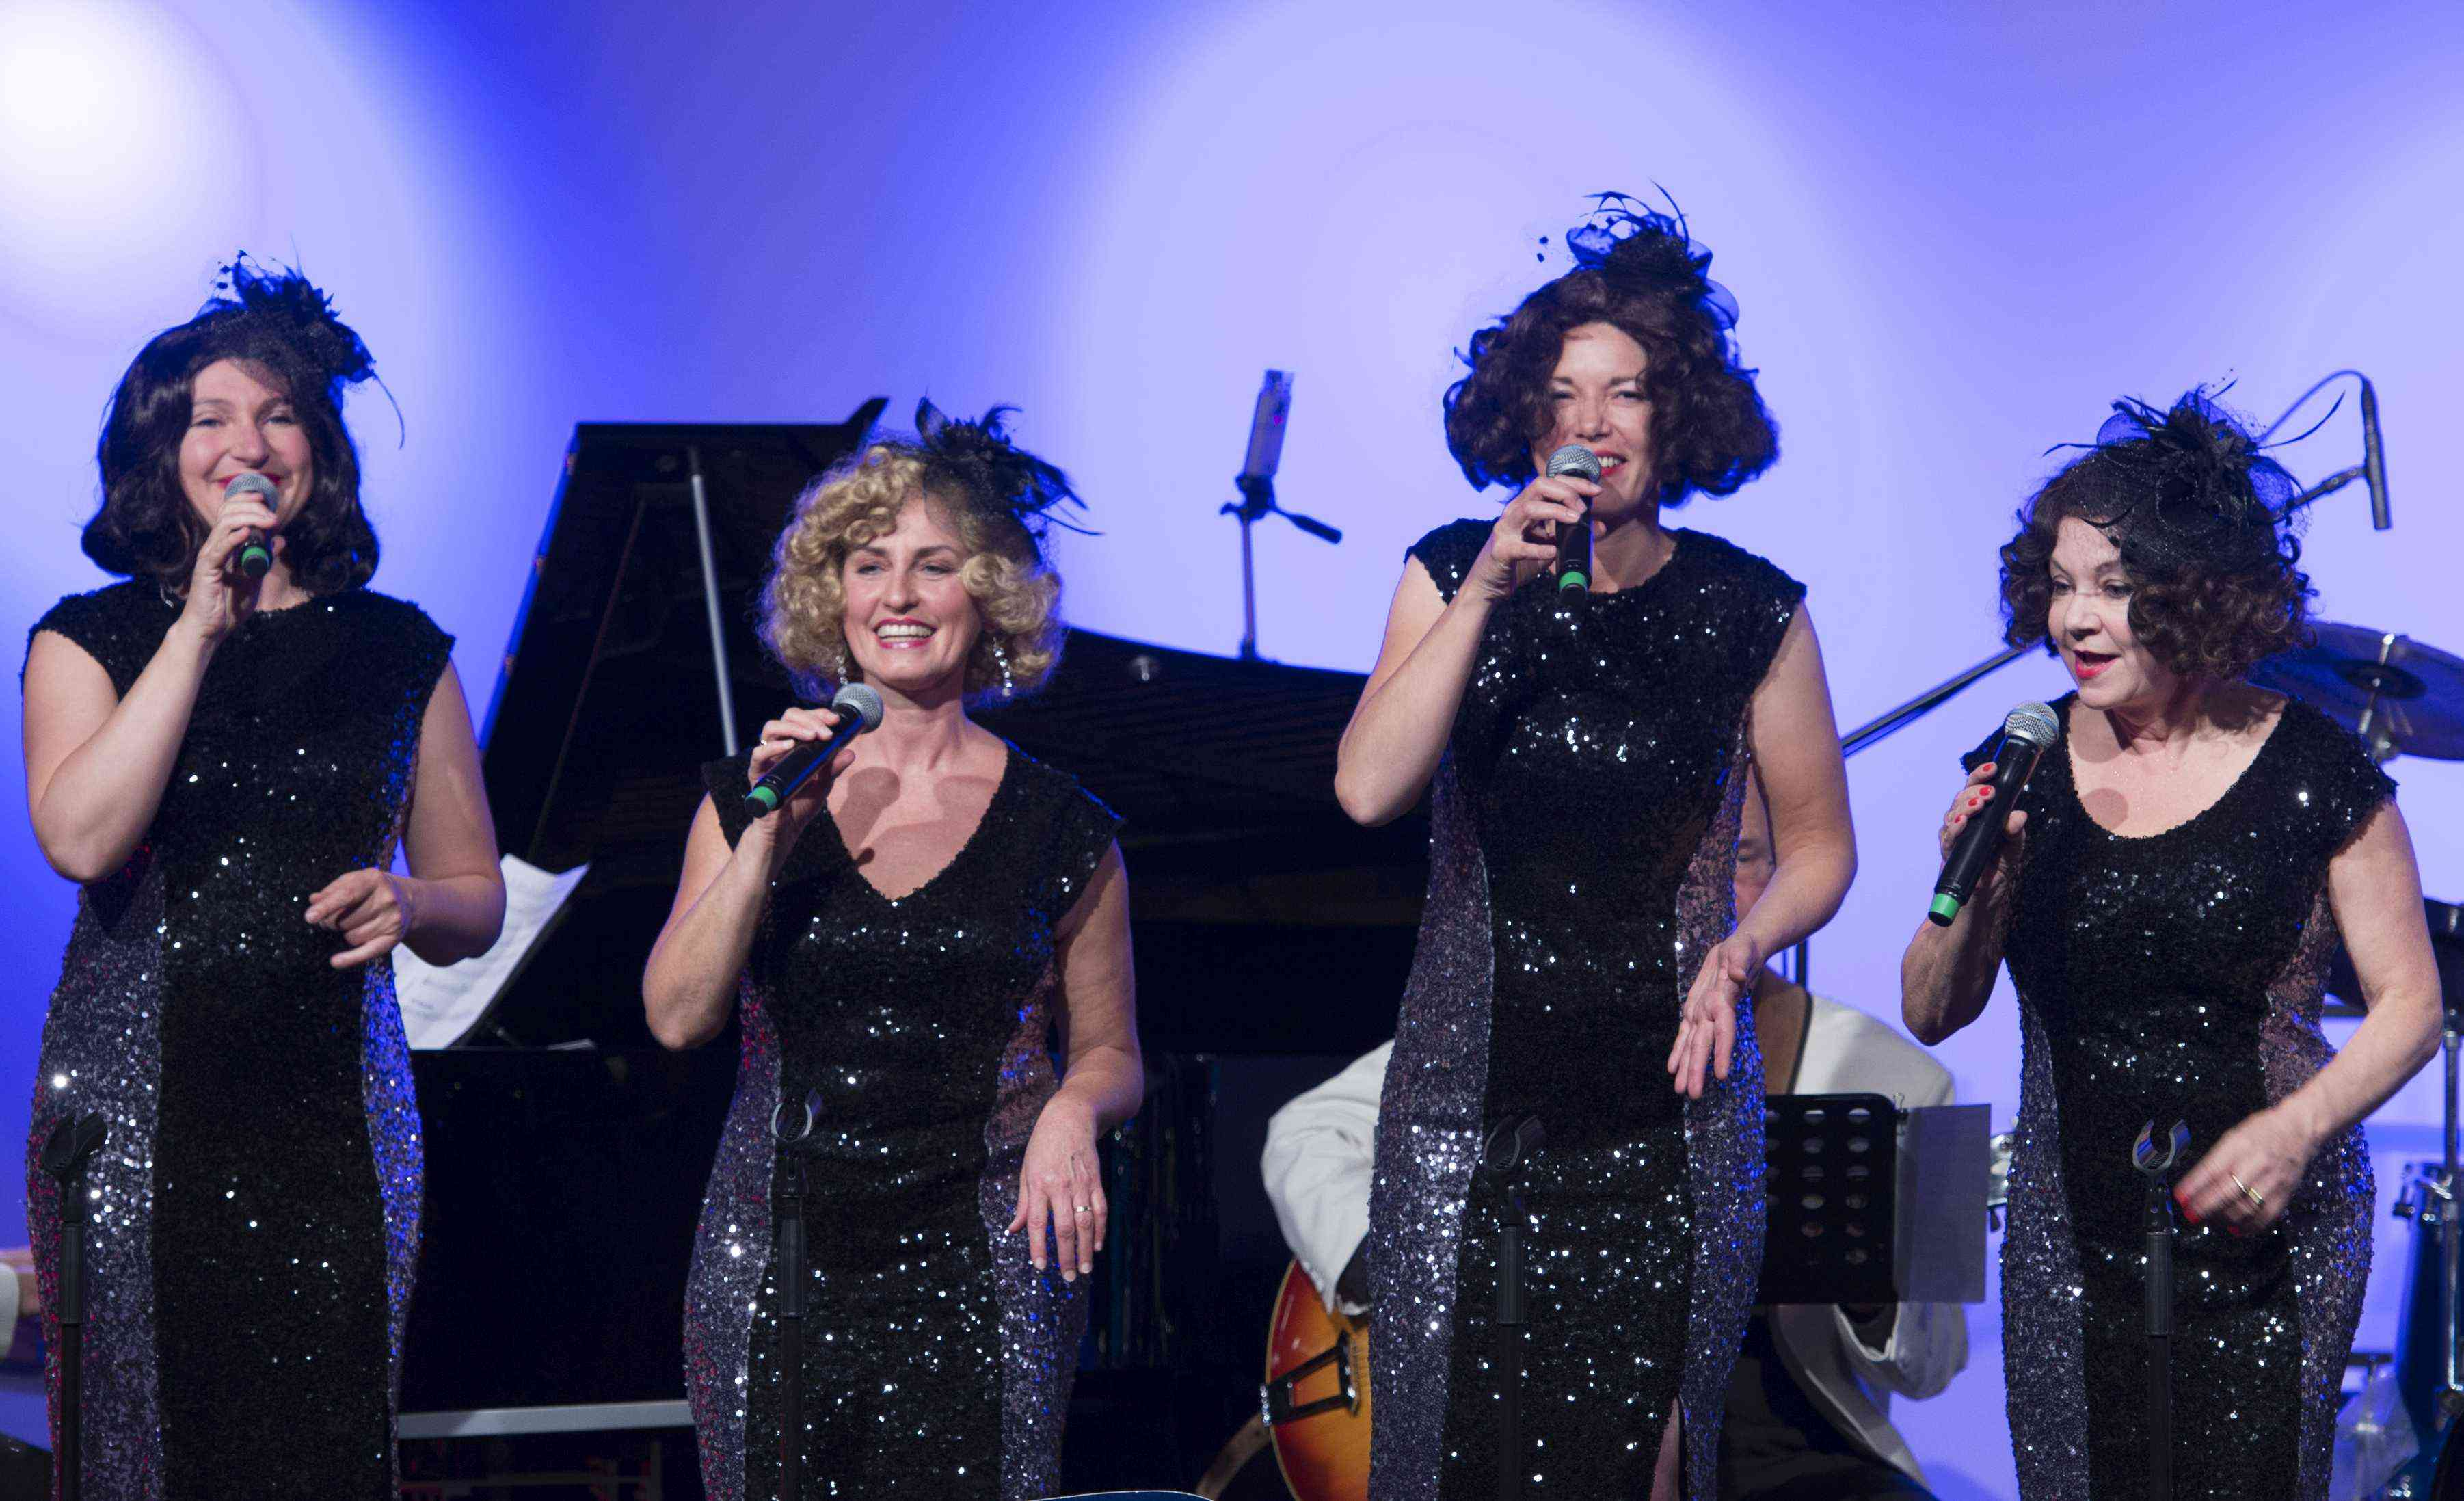 The Funny Valentines live, vocal jazz quartet, jazz, swing, music of the 30s, music of the 40s